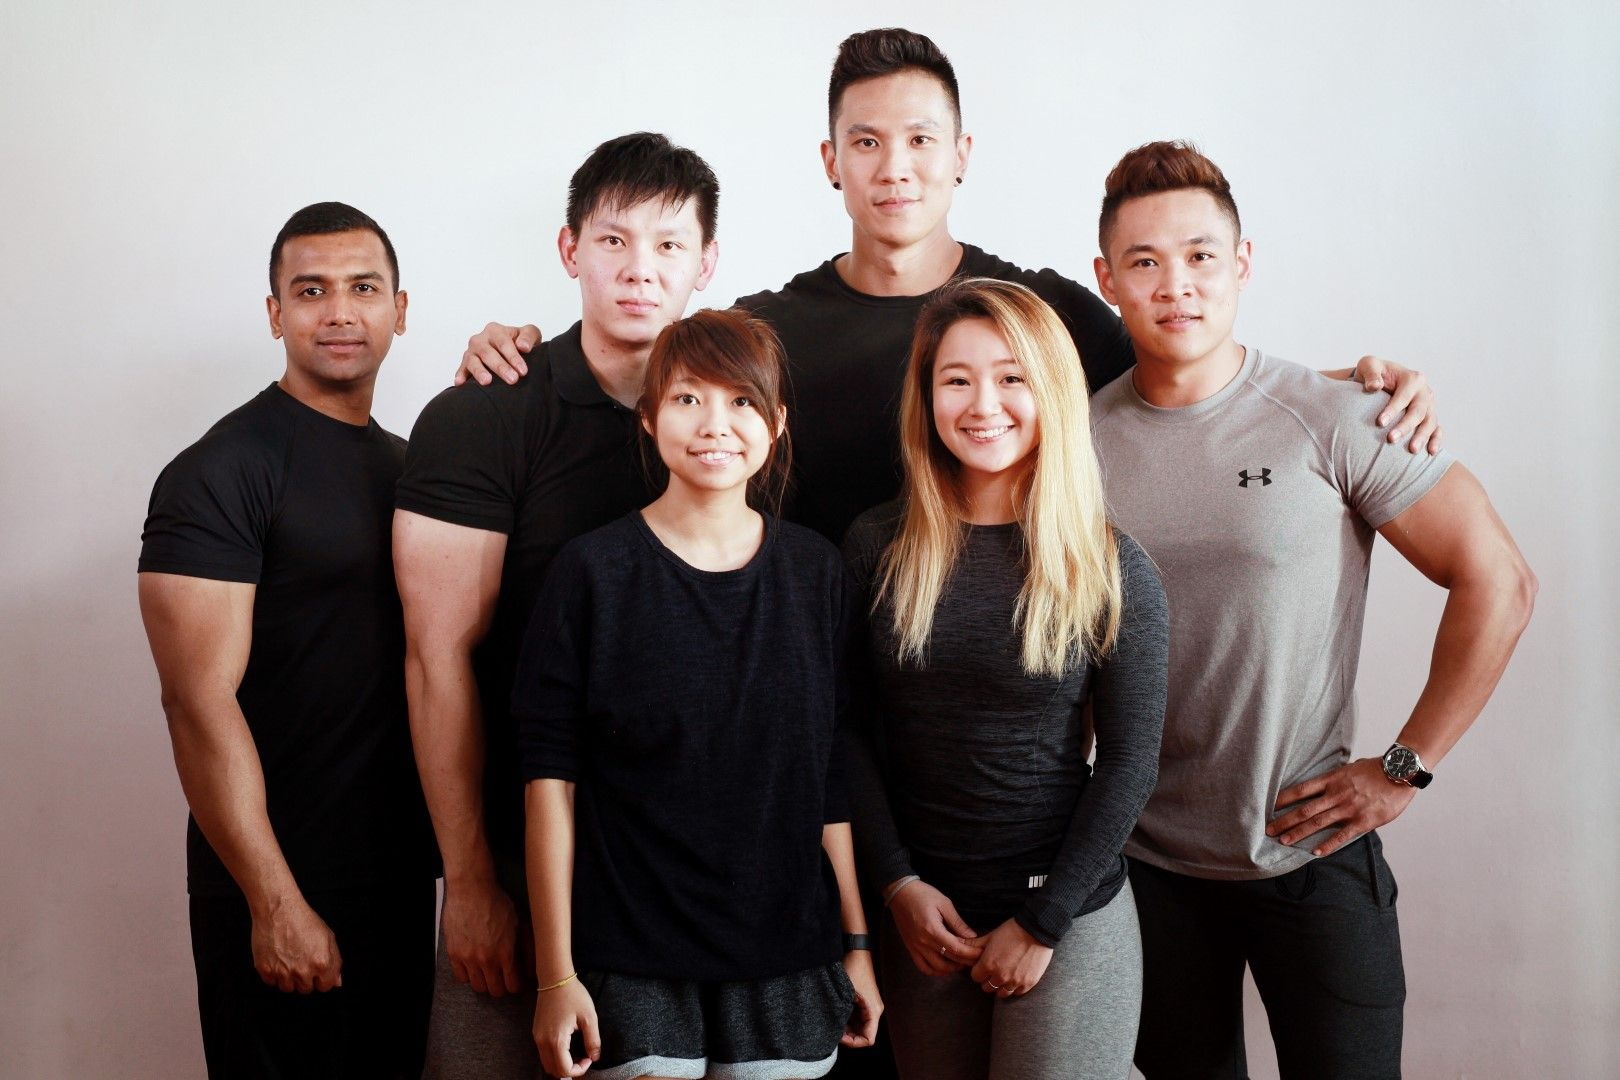 Team of Personal Trainers